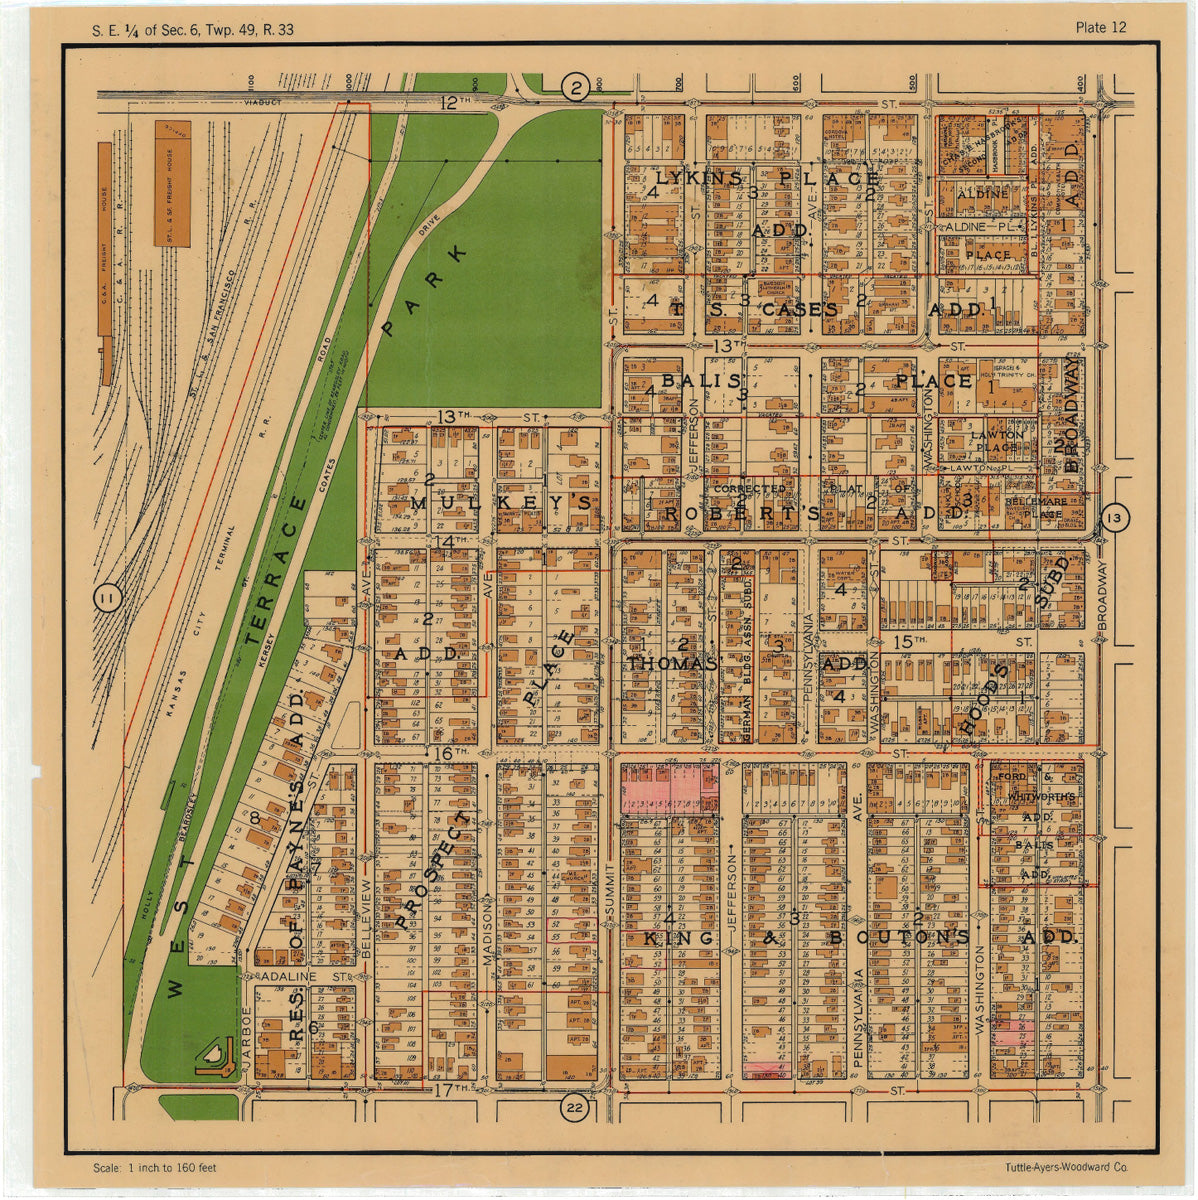 Kansas City 1925 Neighborhood Map - Plate #12 12th-17th Jarboe-Broadway